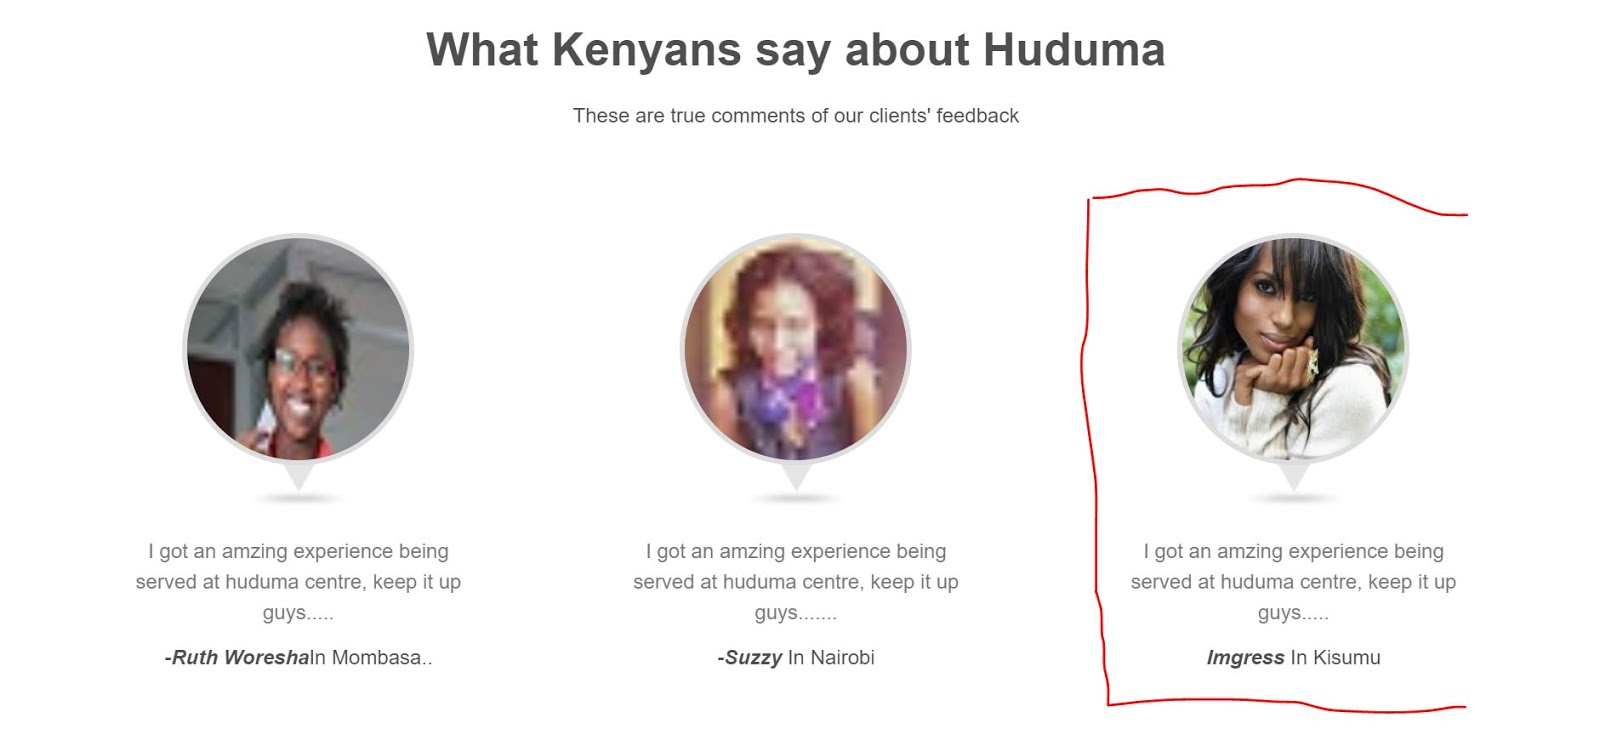 American Actress Used Huduma Kenya Services And Loved It